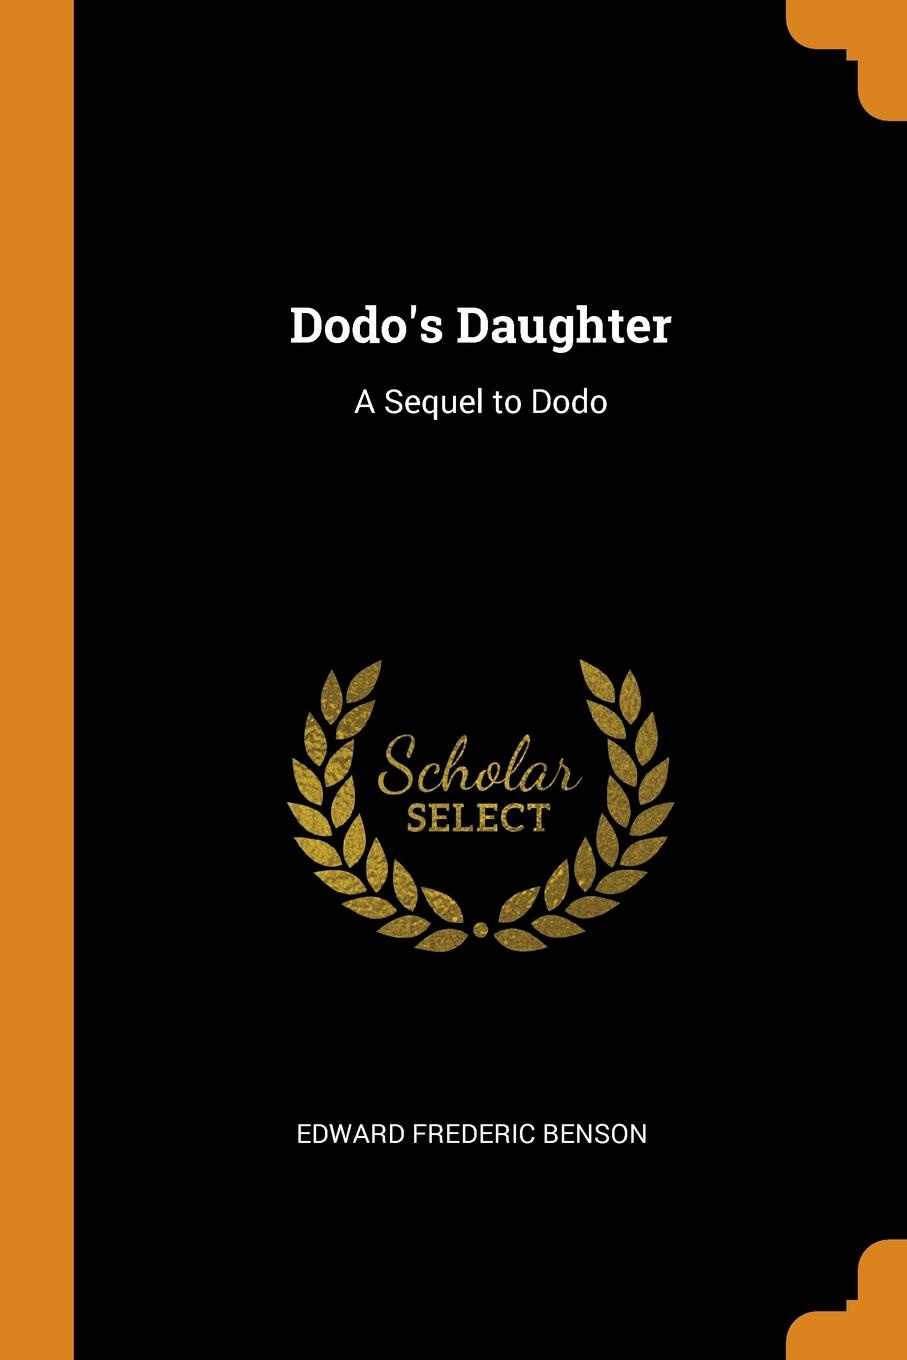 Edward Frederic Benson Dodo.s Daughter. A Sequel to Dodo